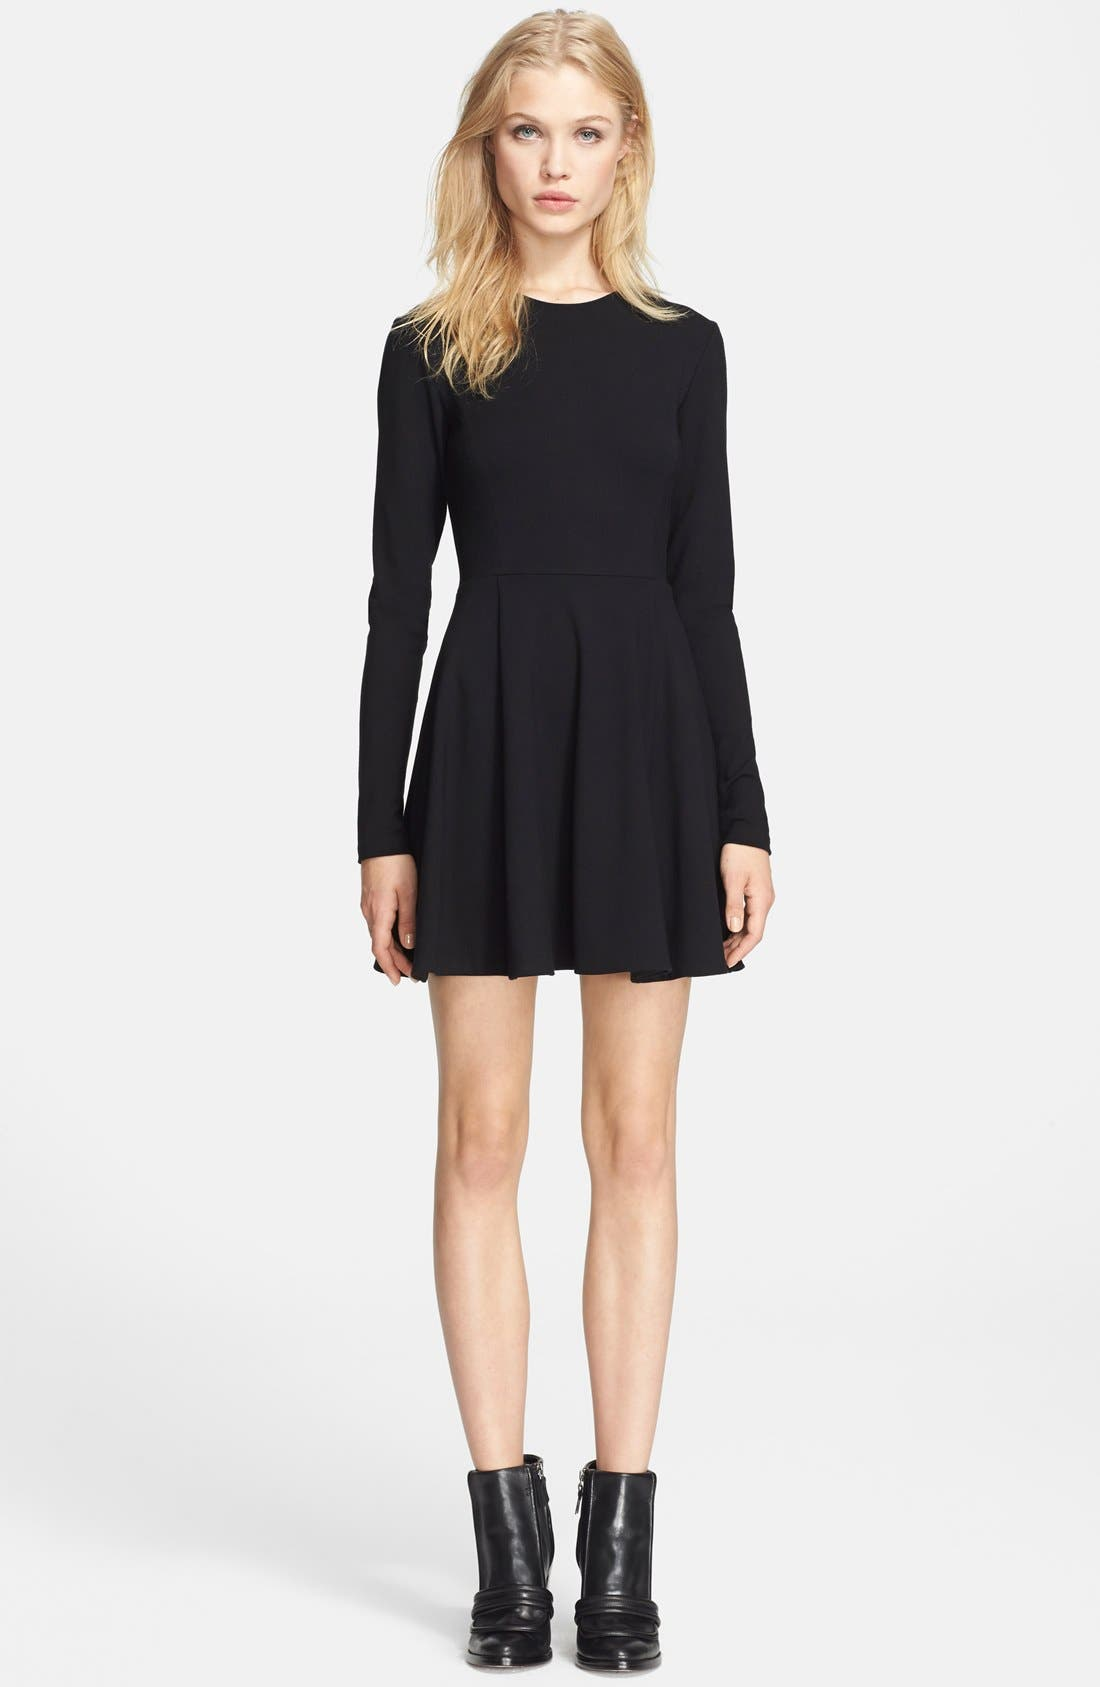 Long sleeve fit and flare cocktail dress